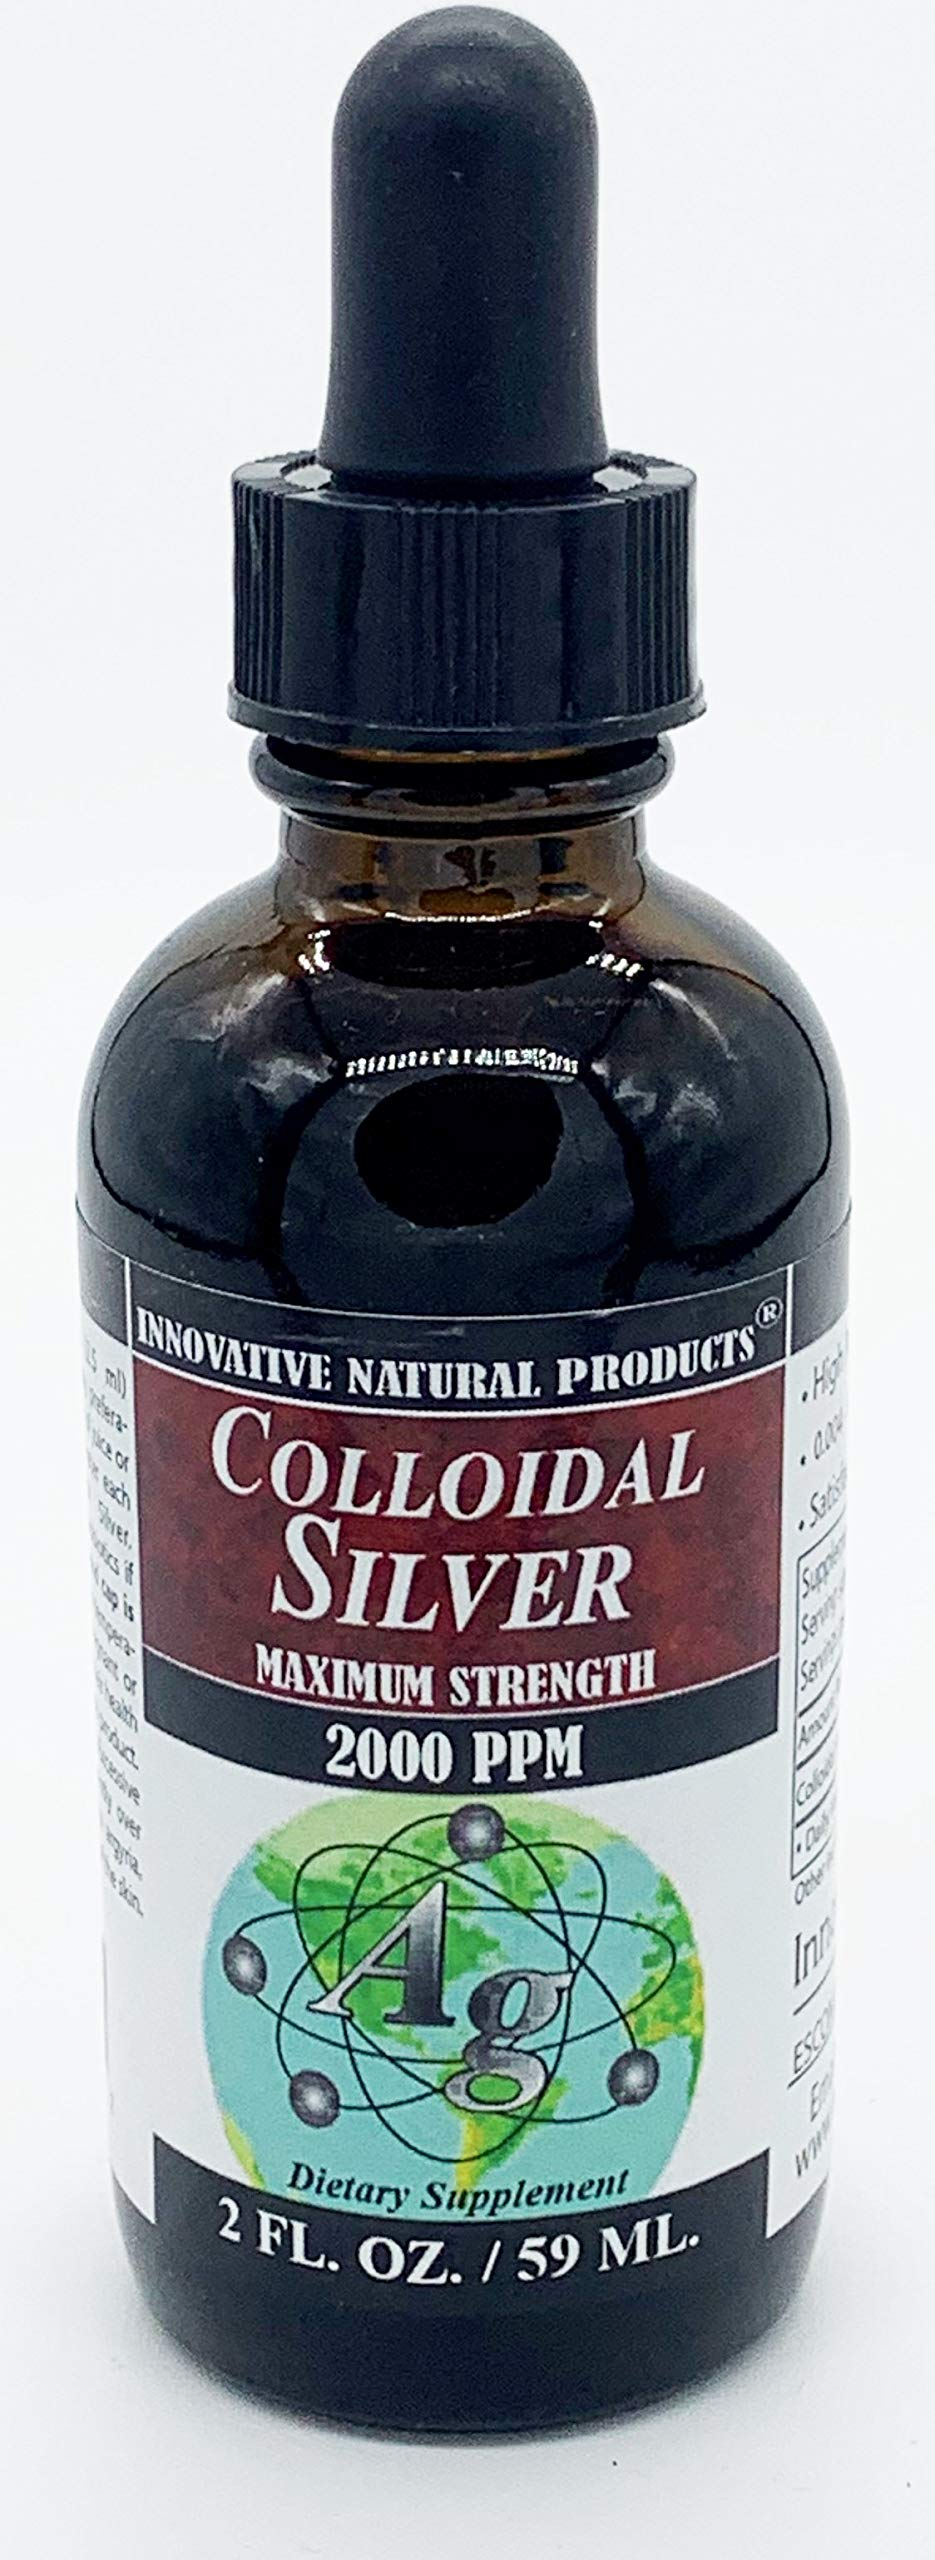 Colloidal Silver 2000 PPM (2 oz) by Innovative Natural Products